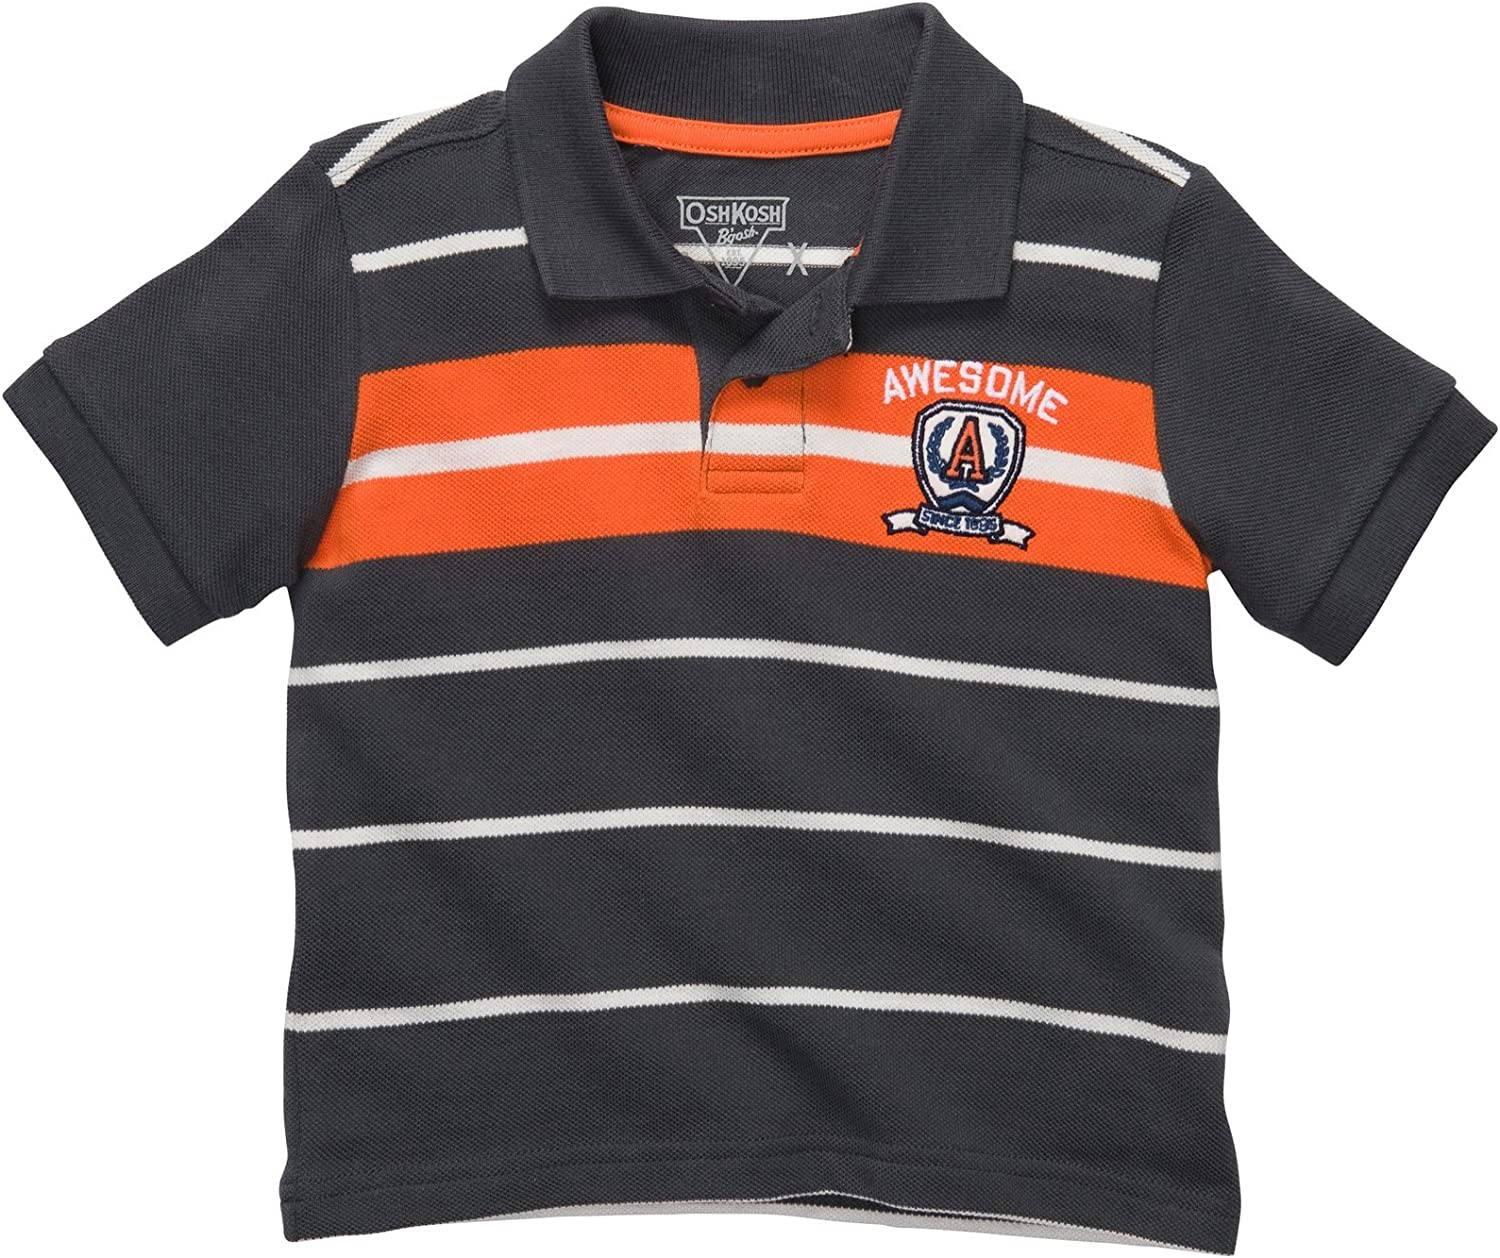 OshKosh BGosh - Polo para niño (Talla 68, 74, 80, 86), Color Gris ...